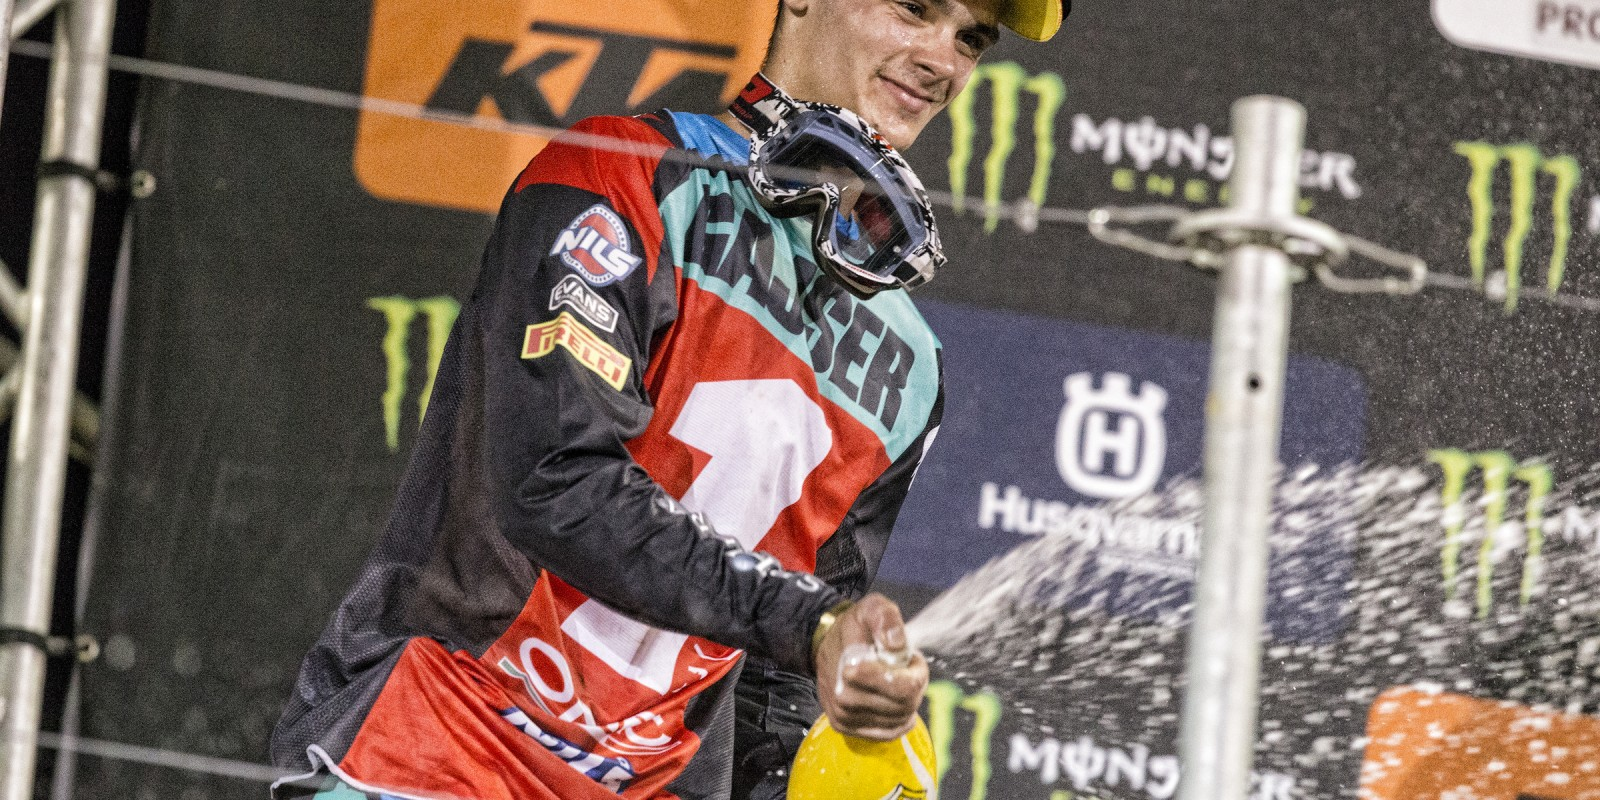 Tim Gajser at the 2016 Monster Energy MXGP of Americas